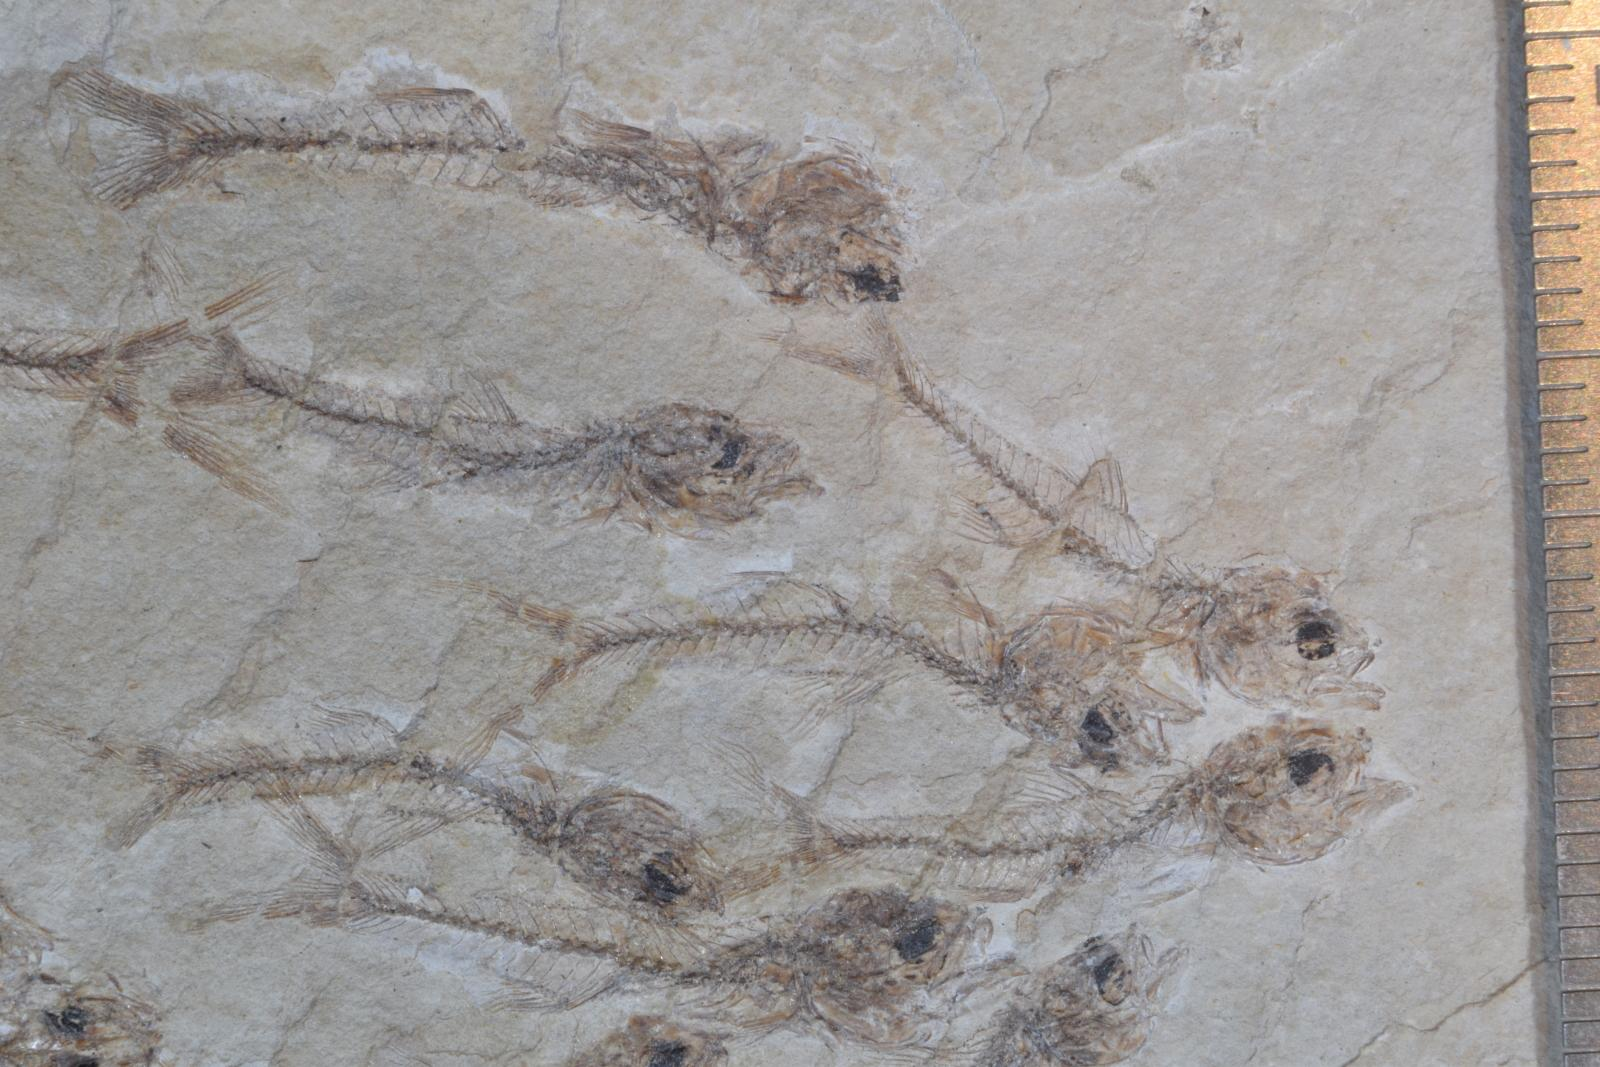 Fossilized fish species published in Proceedings of Royal Society B